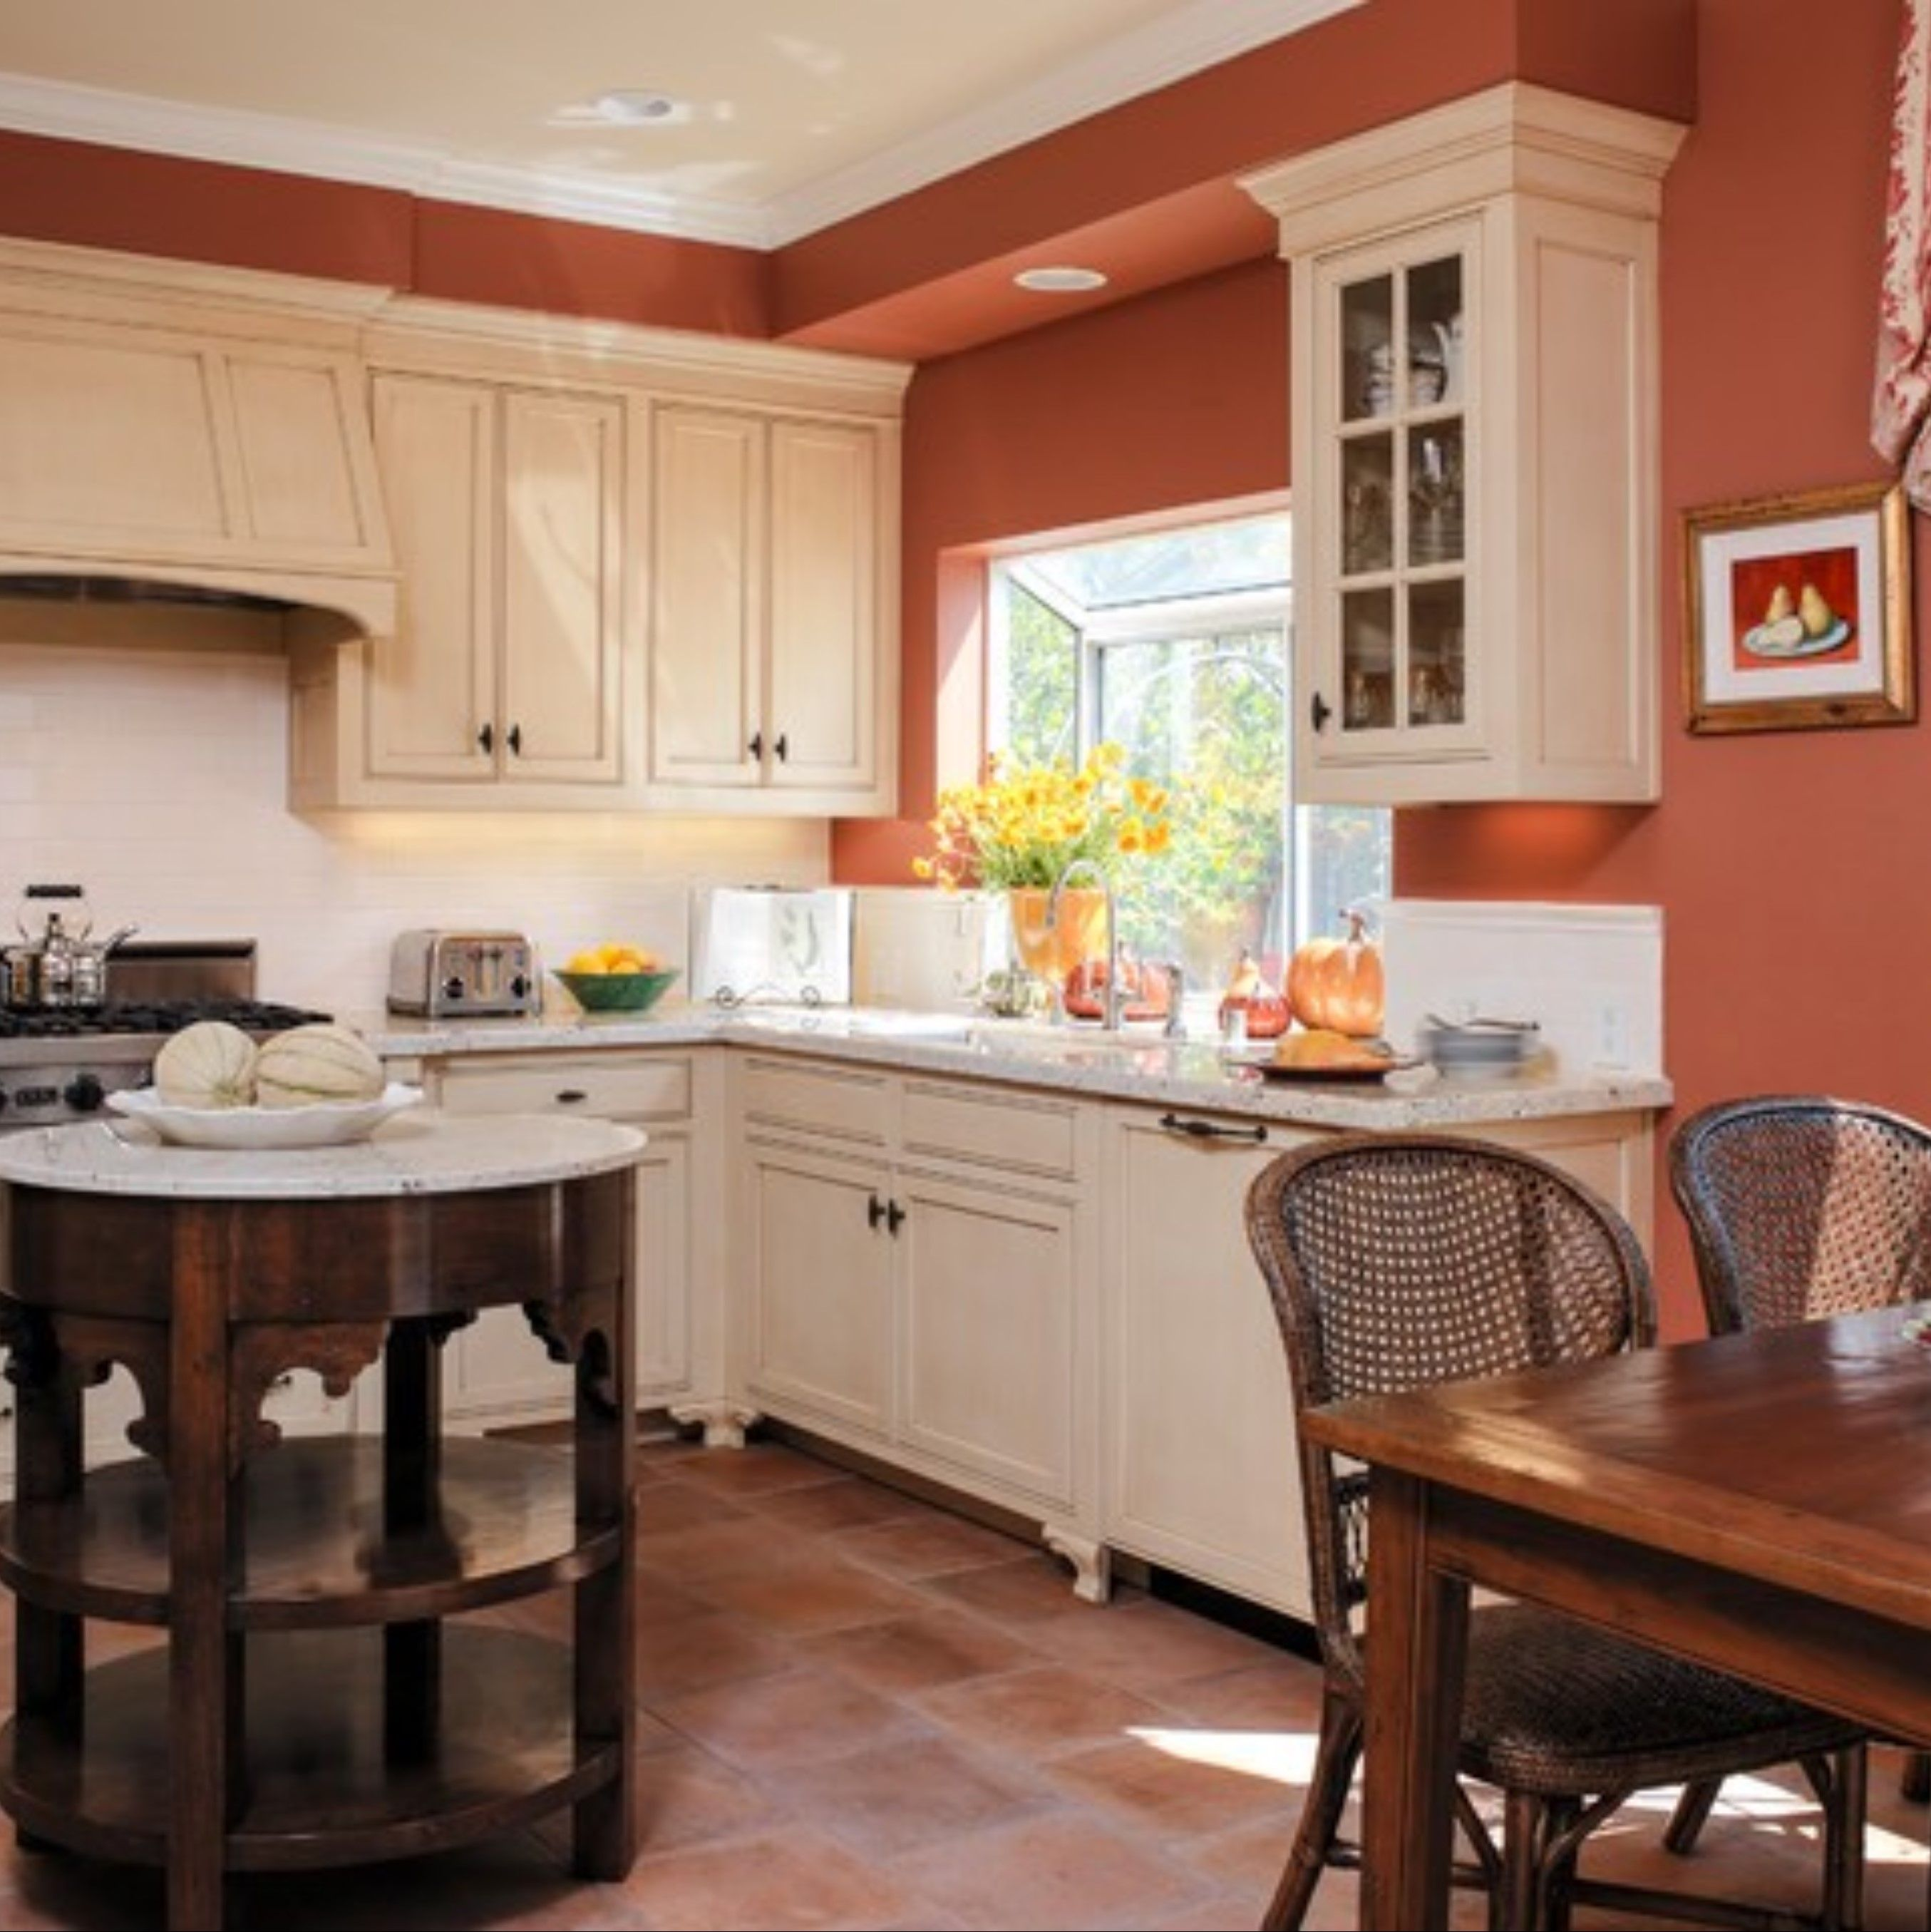 4 Earth Tones To Make Your Kitchen More Grounded Big Chill Kitchen Wall Colors Paint For Kitchen Walls Kitchen Design Color